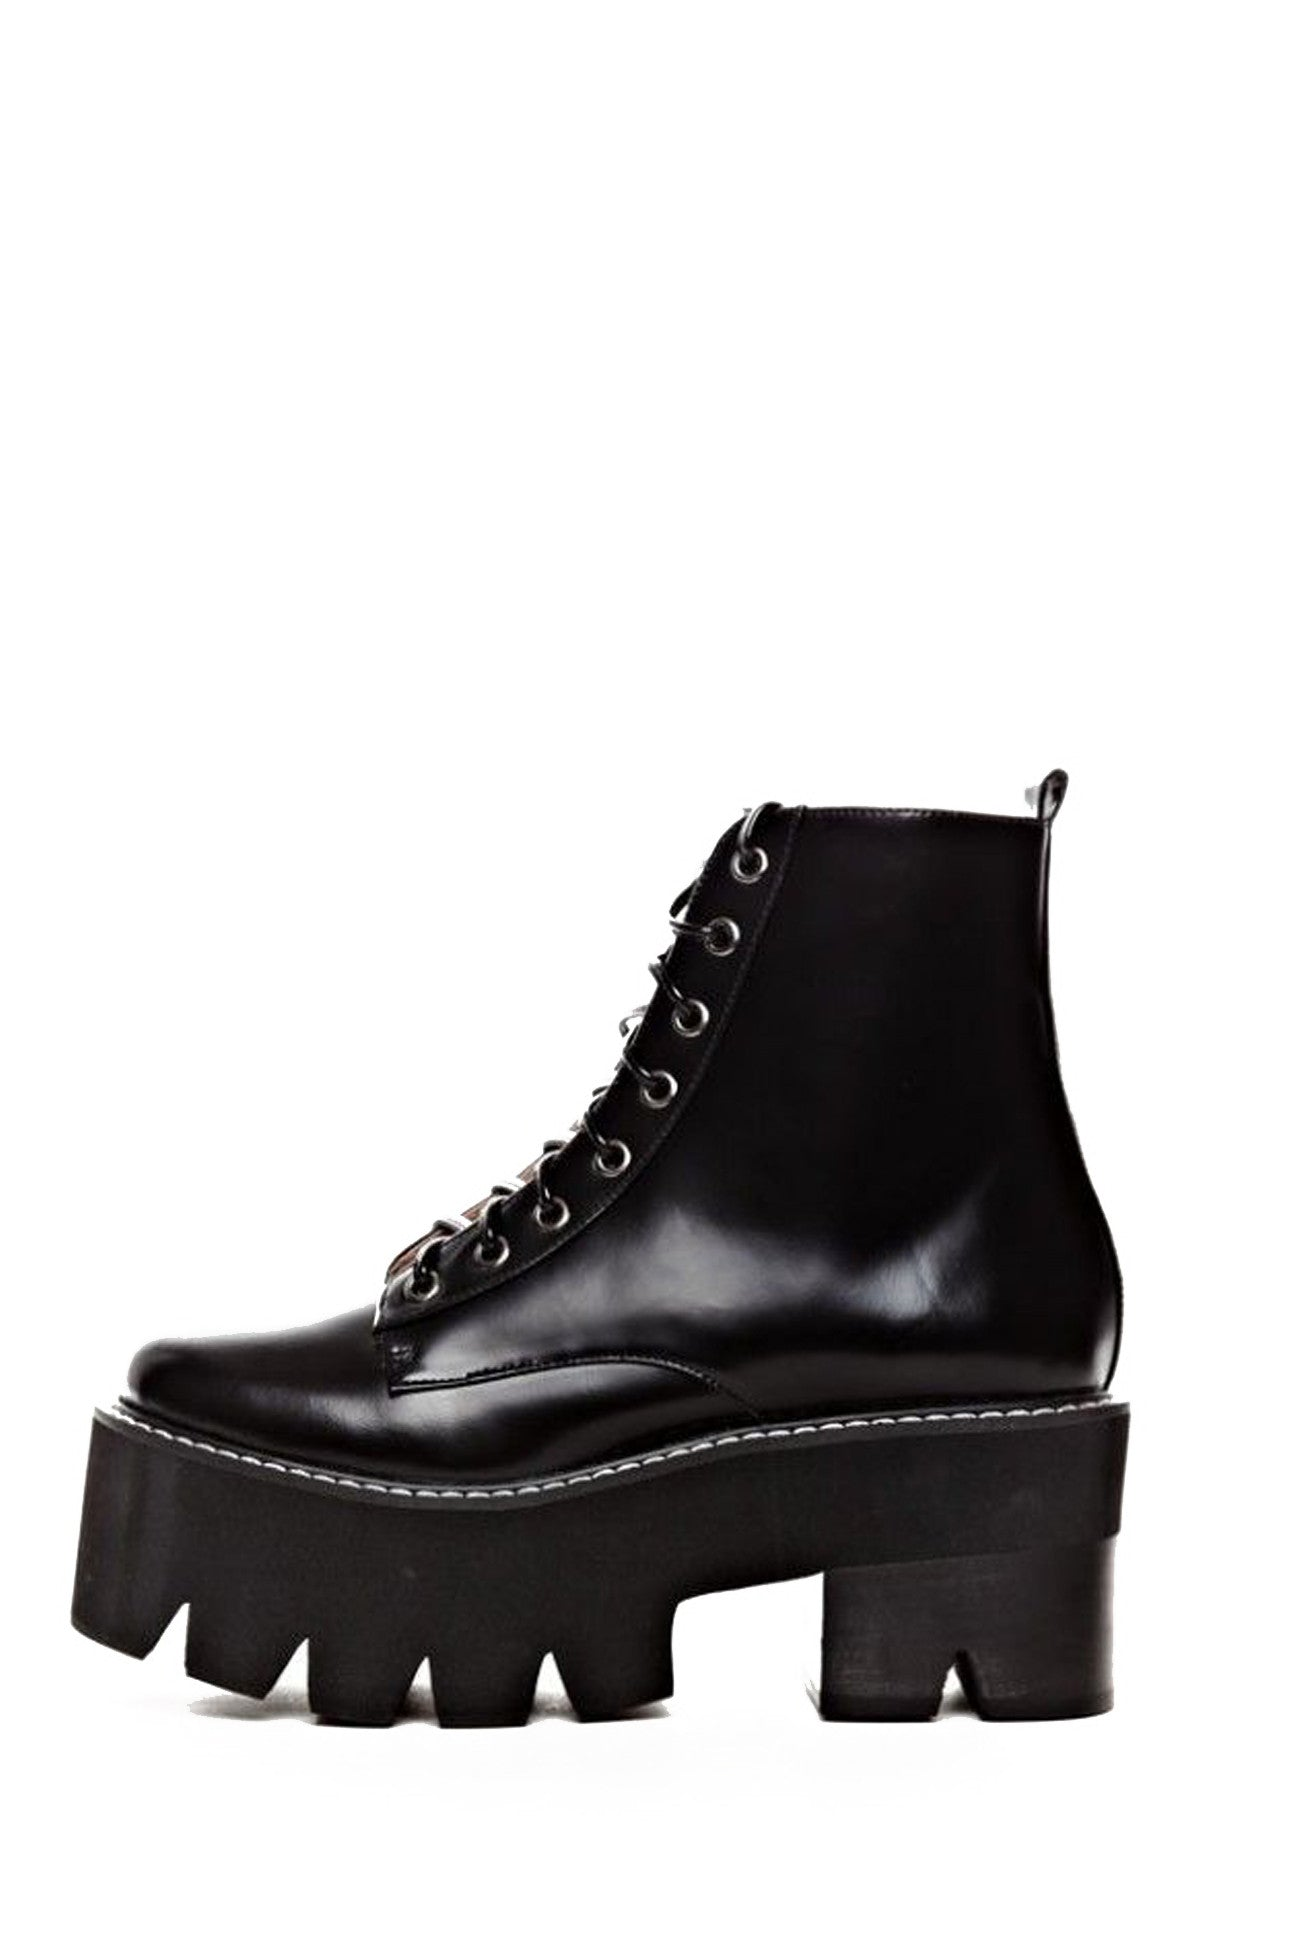 MICHIGAN LACE-UP COMBAT BOOT - MeMata  - 2